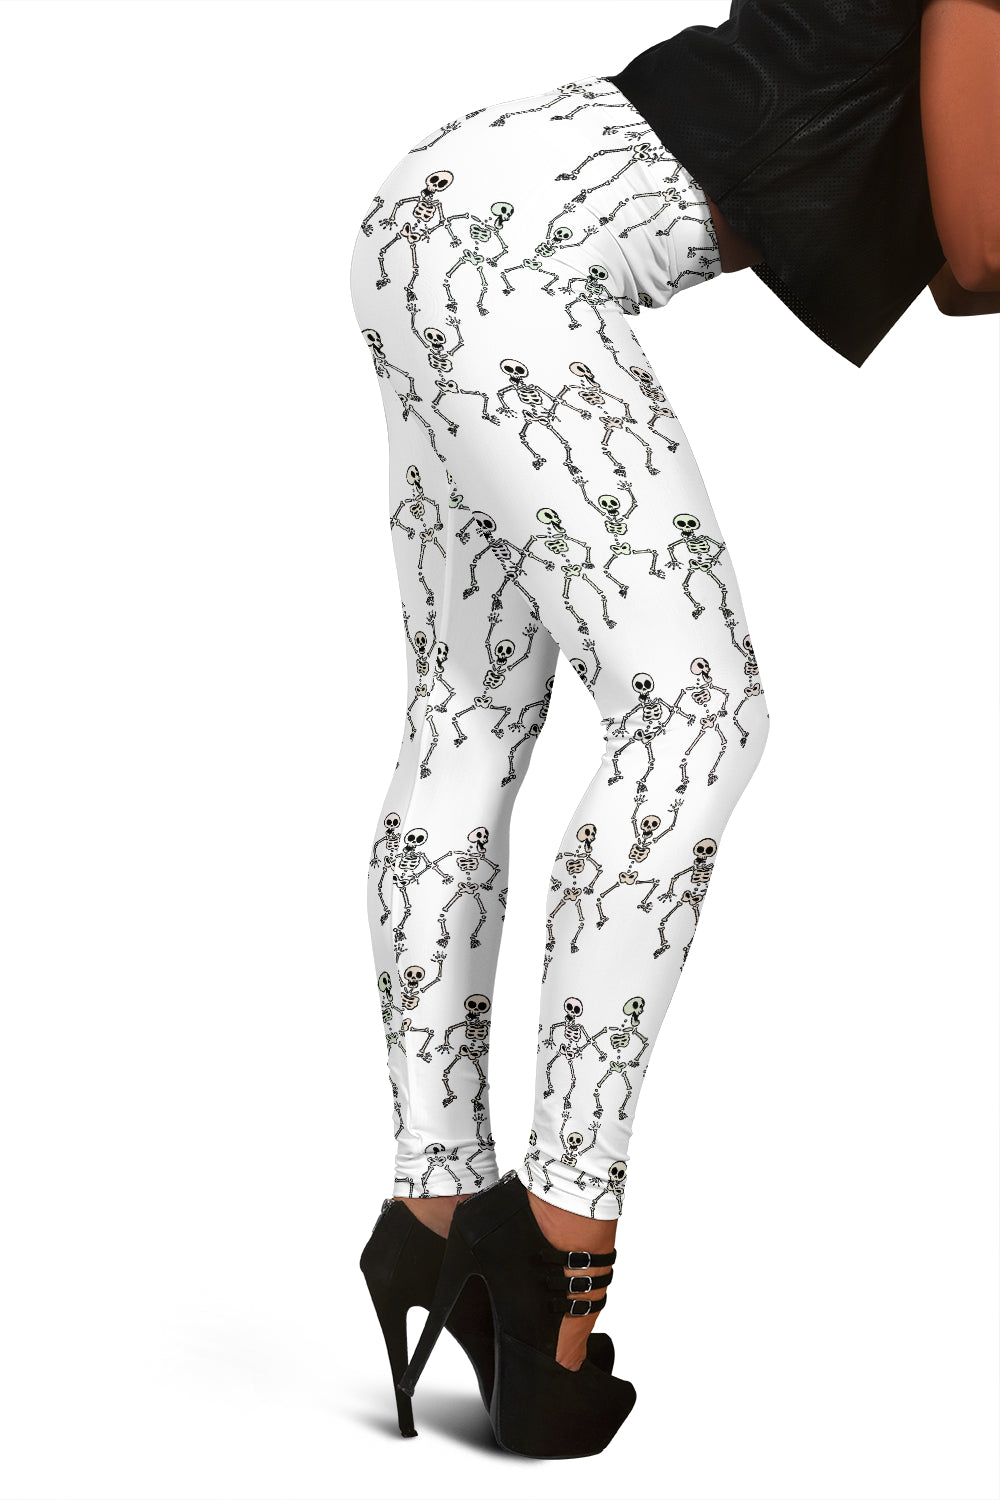 SKELETON Leggings - Her Athletic Lifestyle